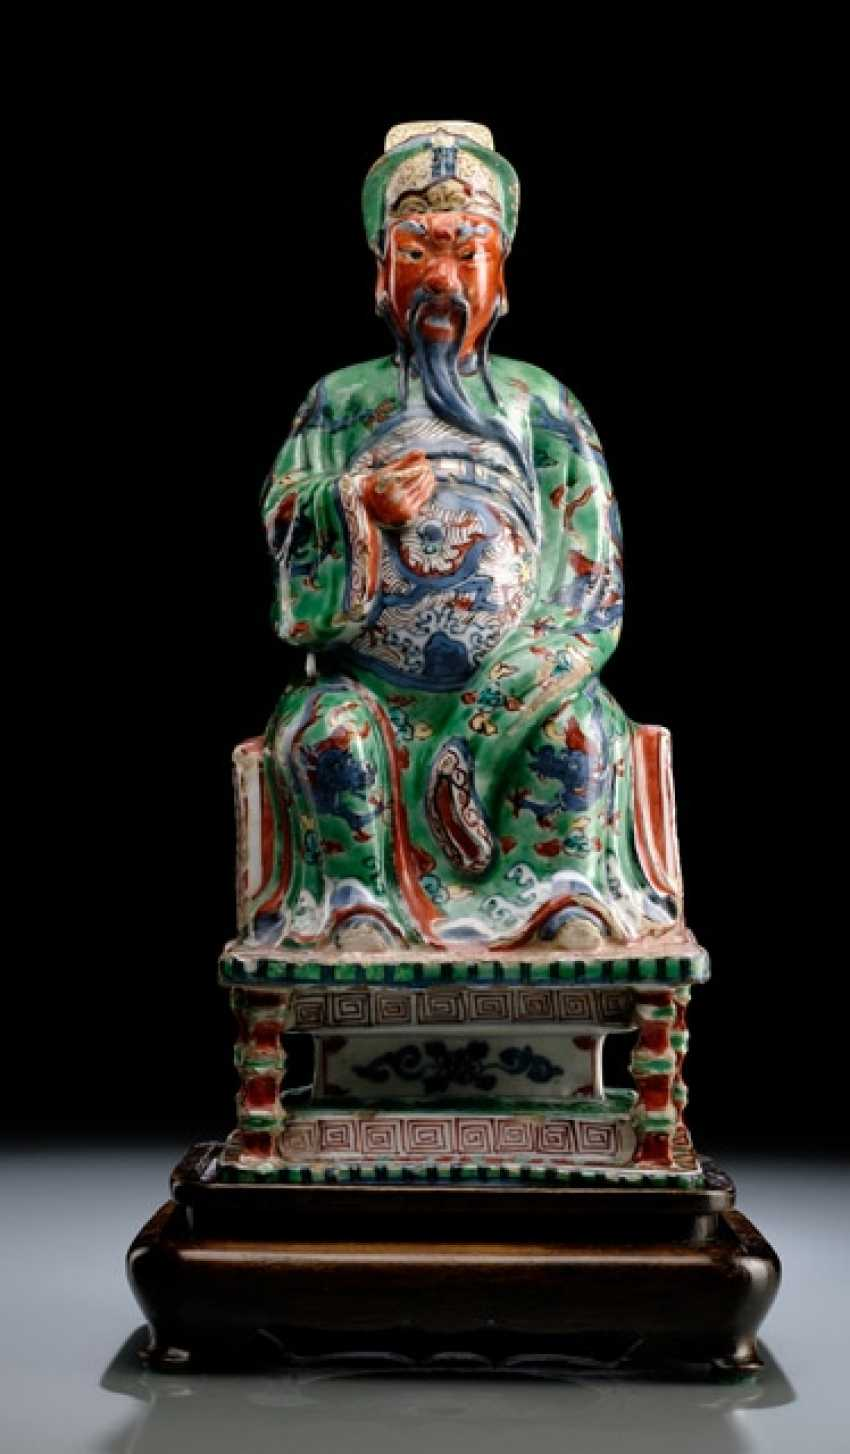 A VERY RARE WUCAI FIGURE OF GUANDI ON A THRONE WITH WOOD